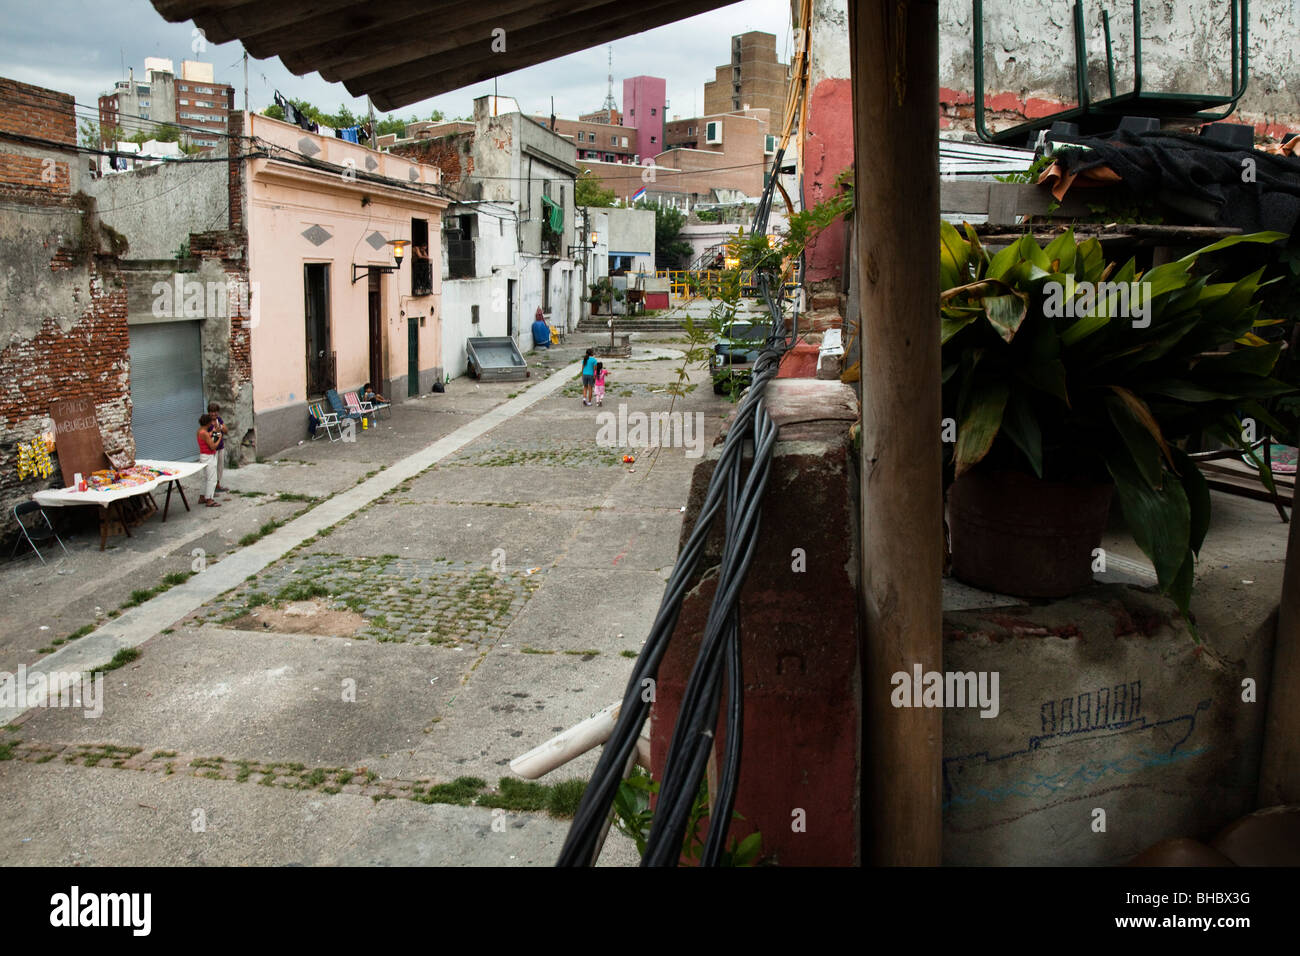 e33cf3c74c5a1 View of Calle Curuguaty in a traditional black neighborhood (Barrio Sur) of  Montevideo